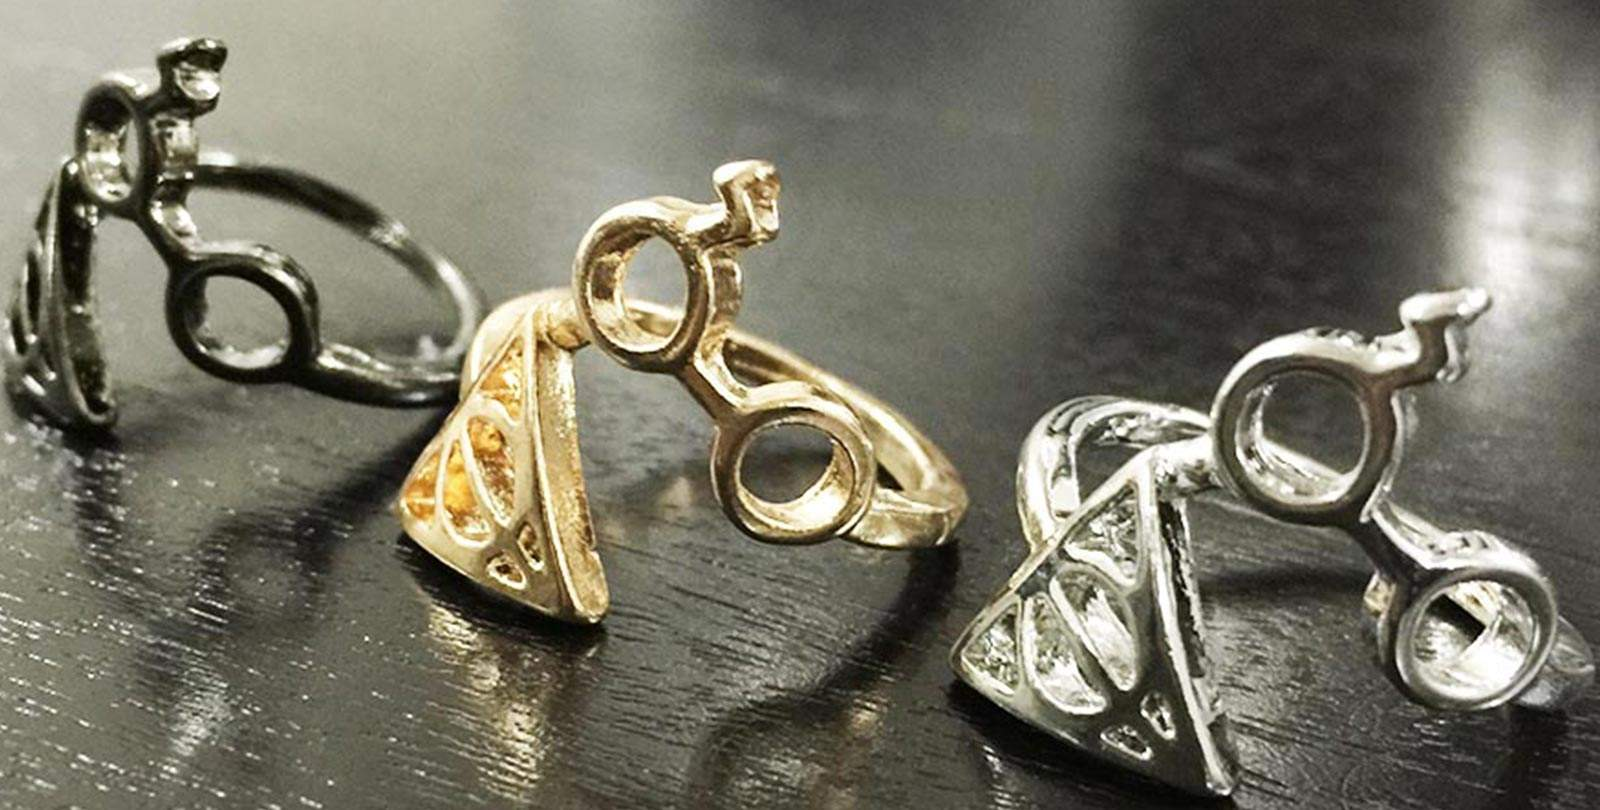 Magic At Your Fingertips with these Harry Potter Inspired Deathly Hallows Rings